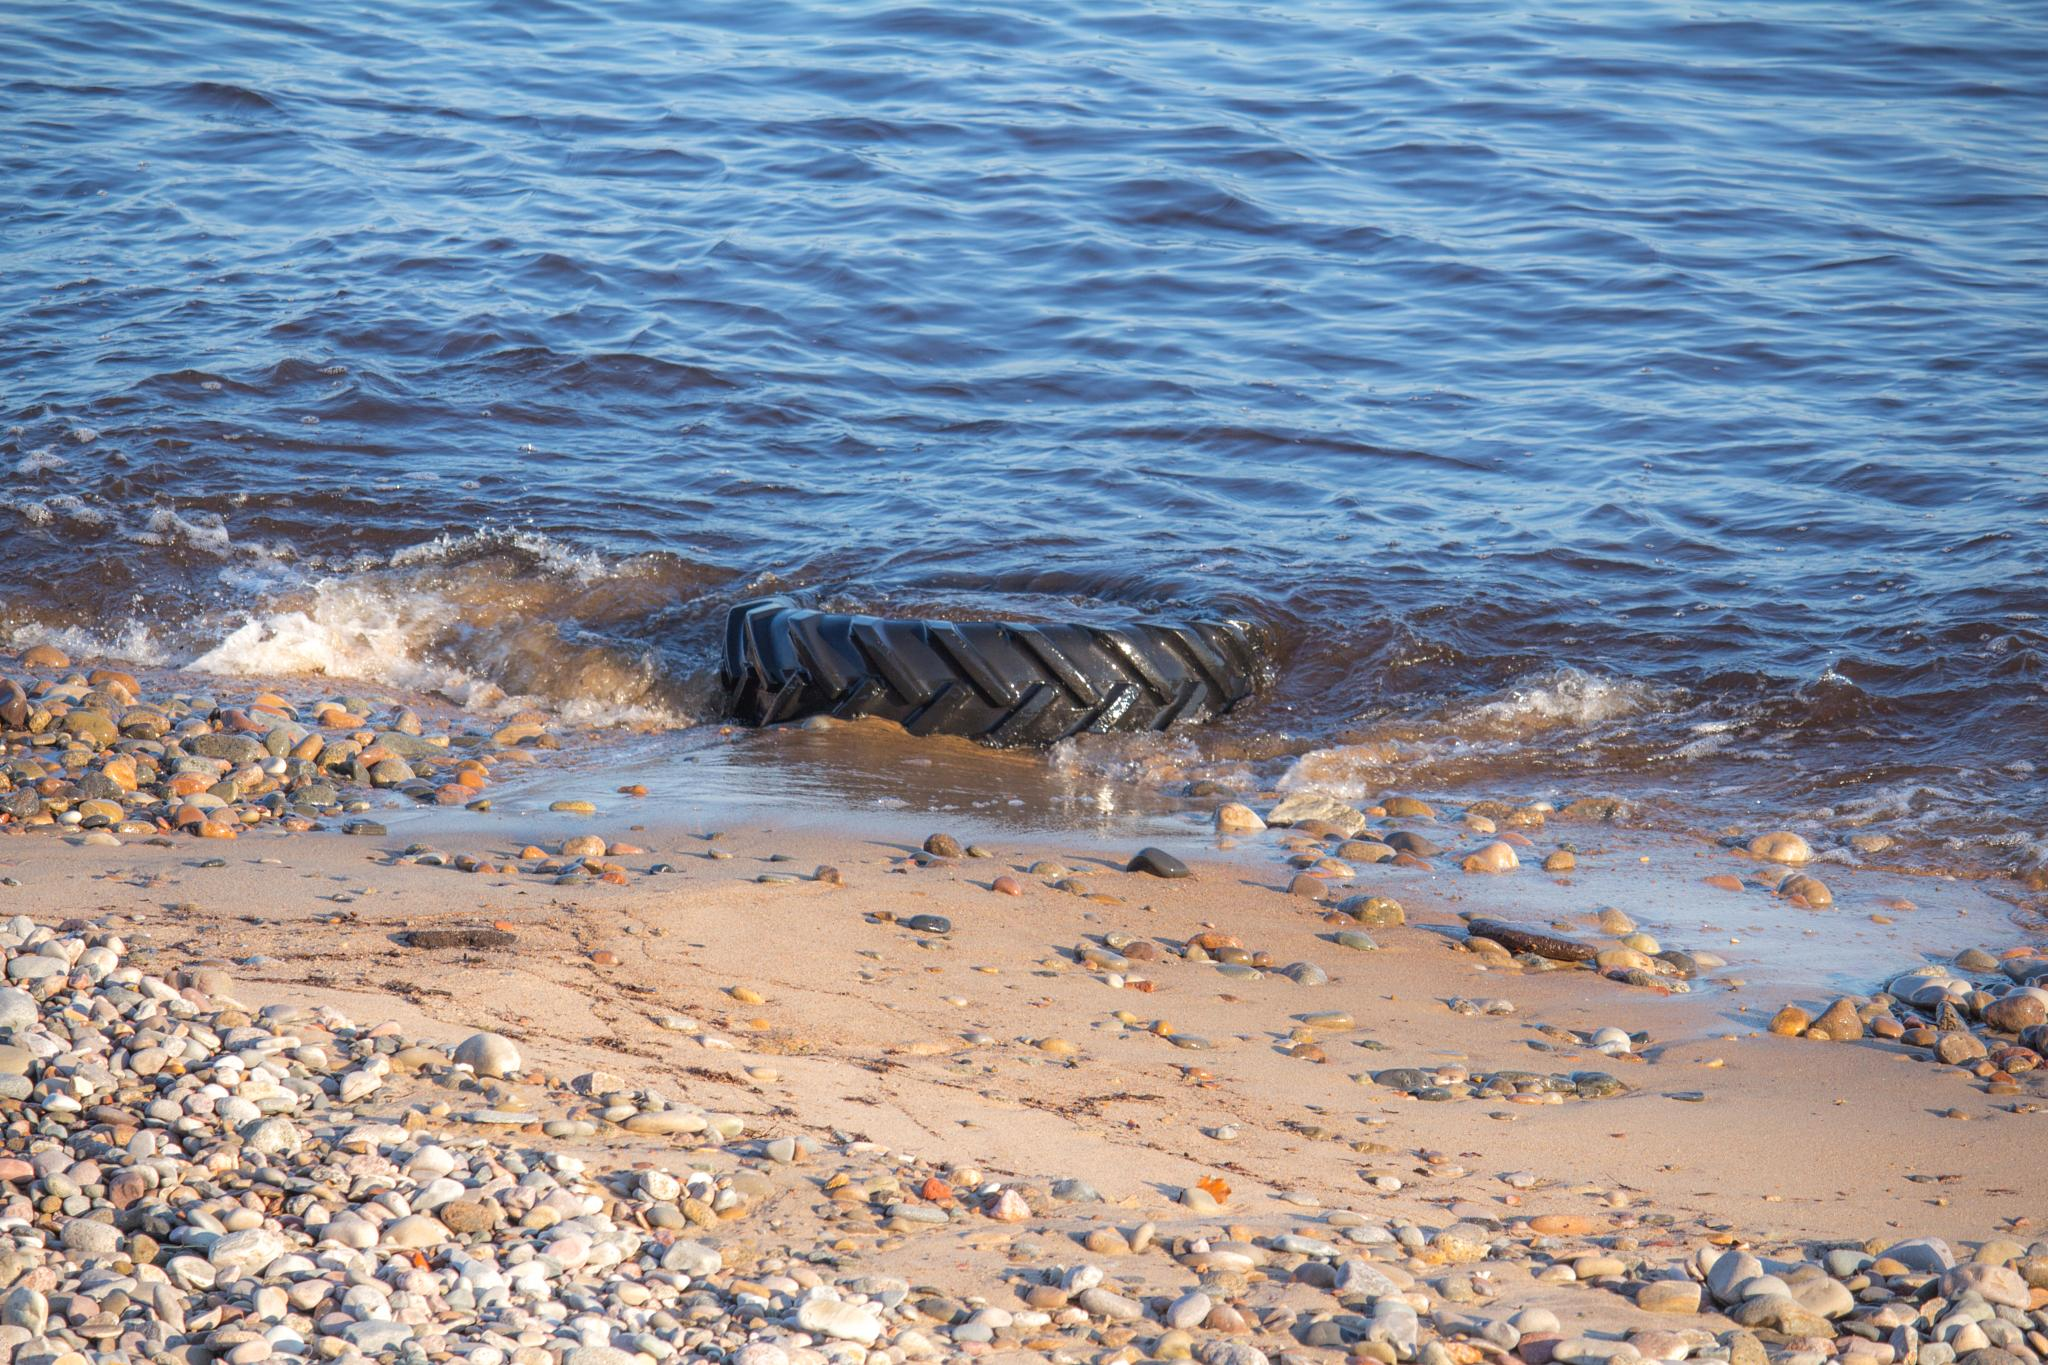 Tyre in the water. by Magnus Bengtsson